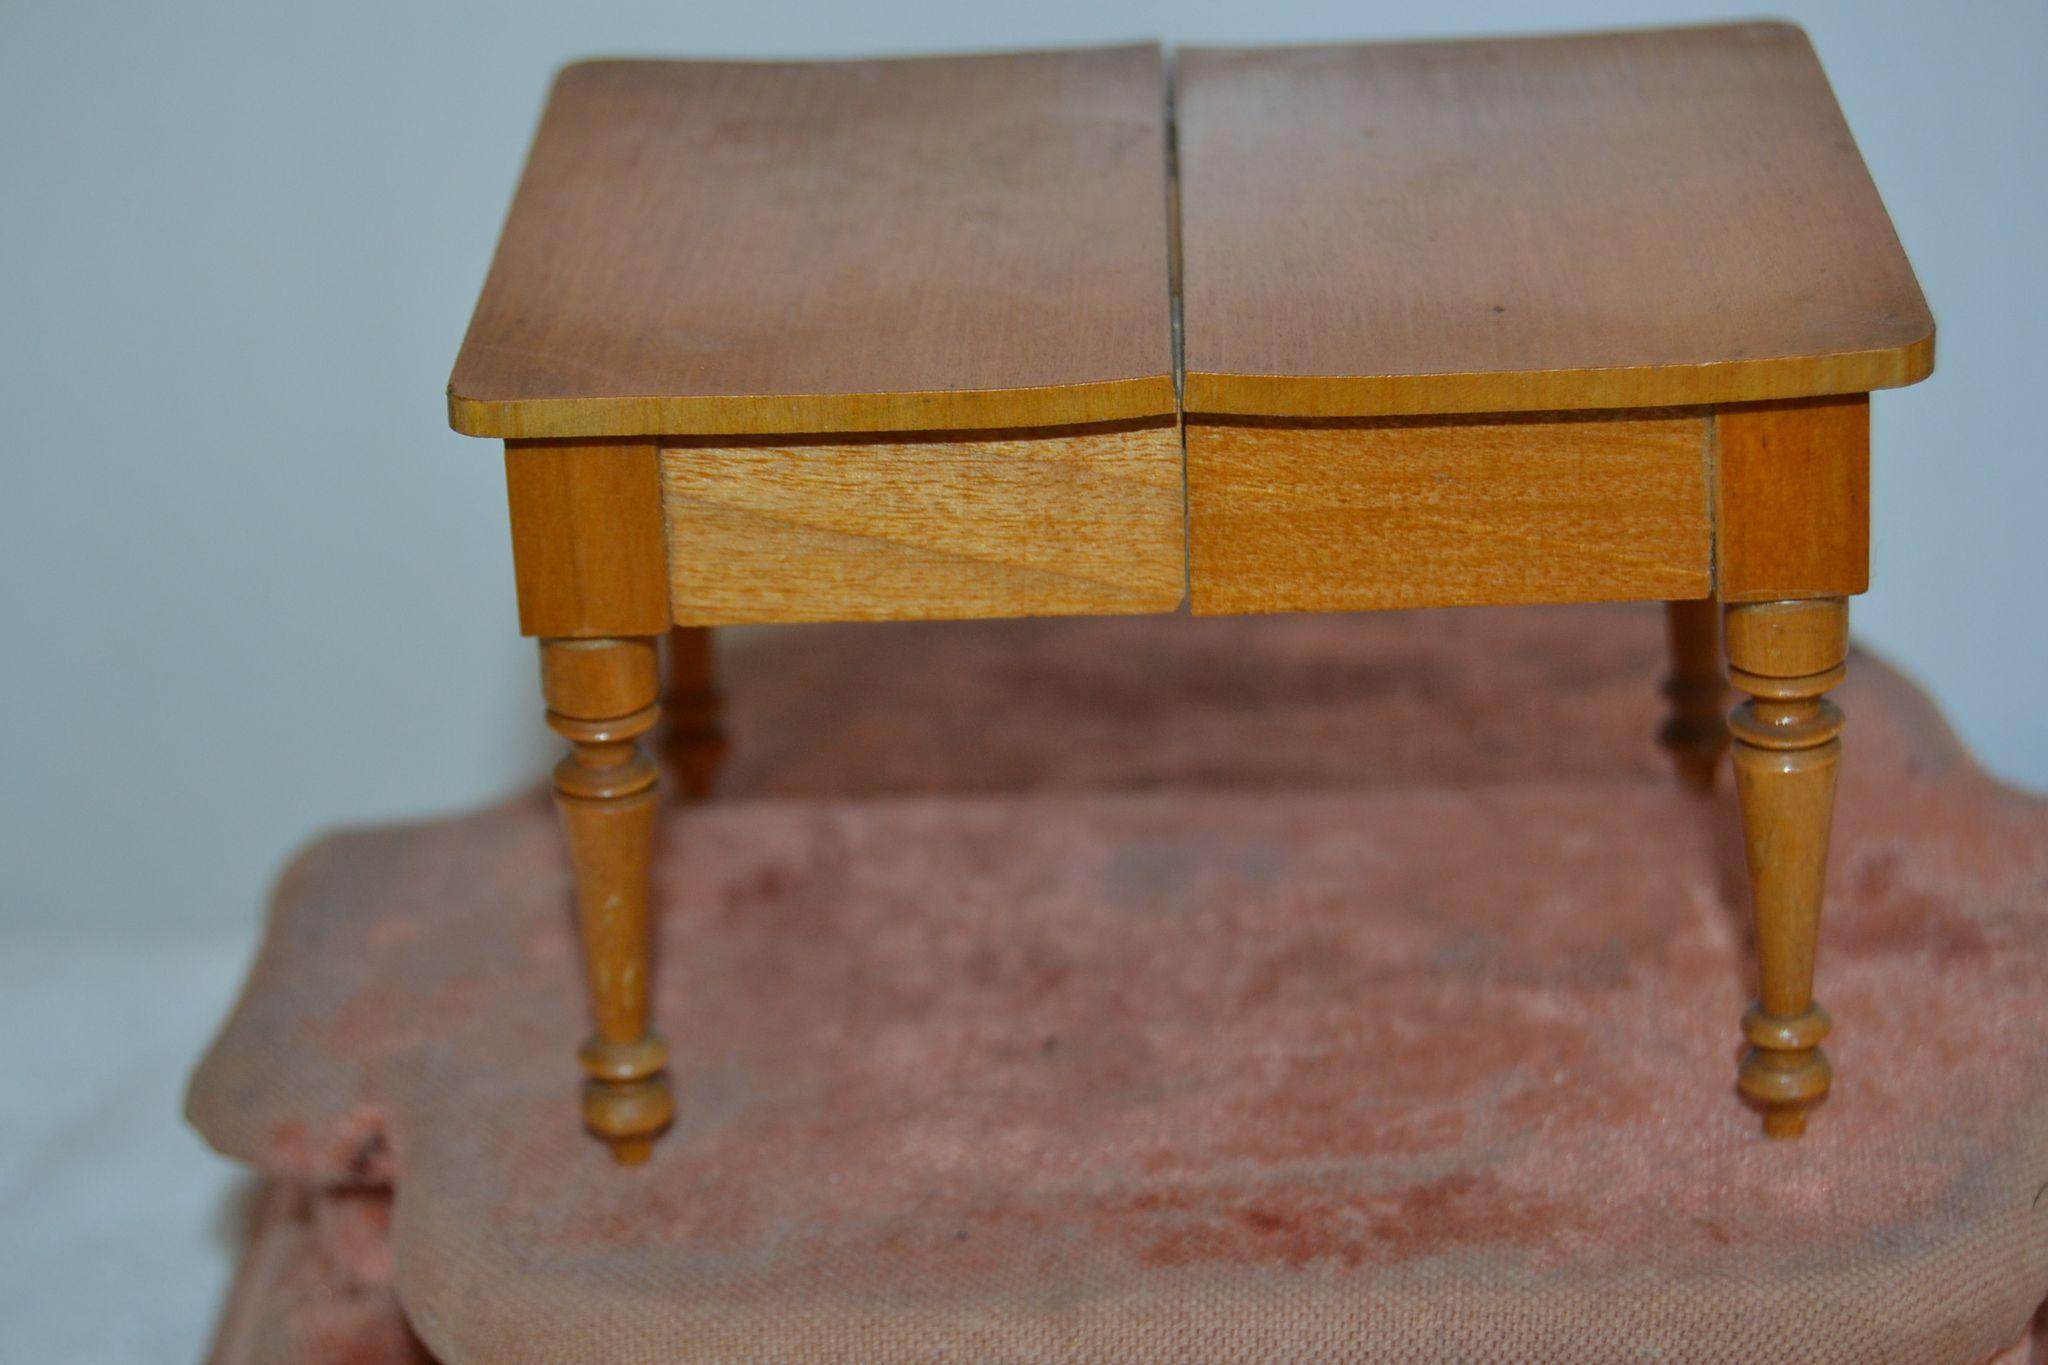 1900 Extension table for your doll's house